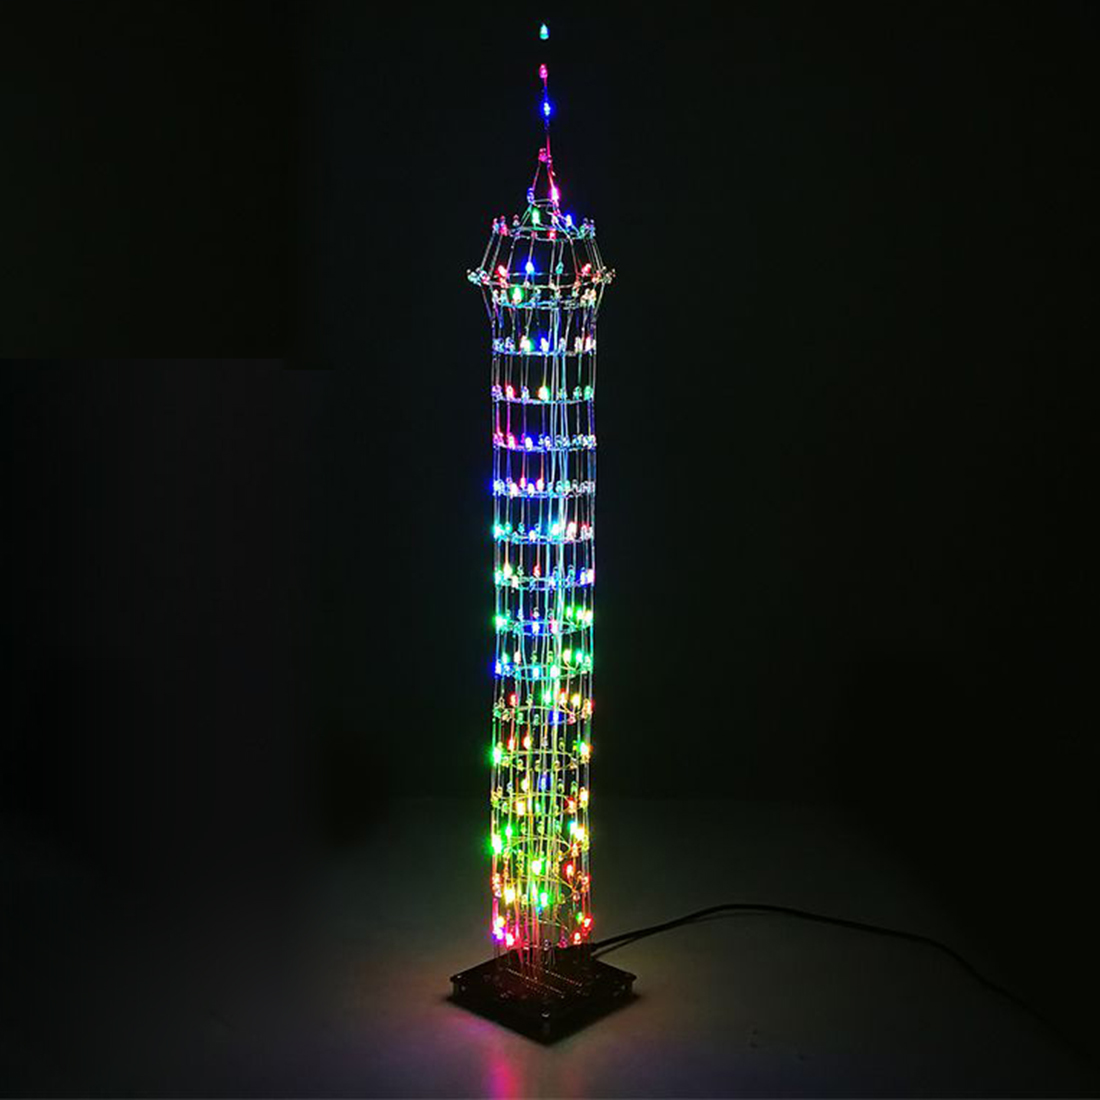 DIY Colorful LED Display Lamp Infrared Remote Control DIY Welding Light Kits DIY Lamp Brain-Training Toy For Child - Macao Tower